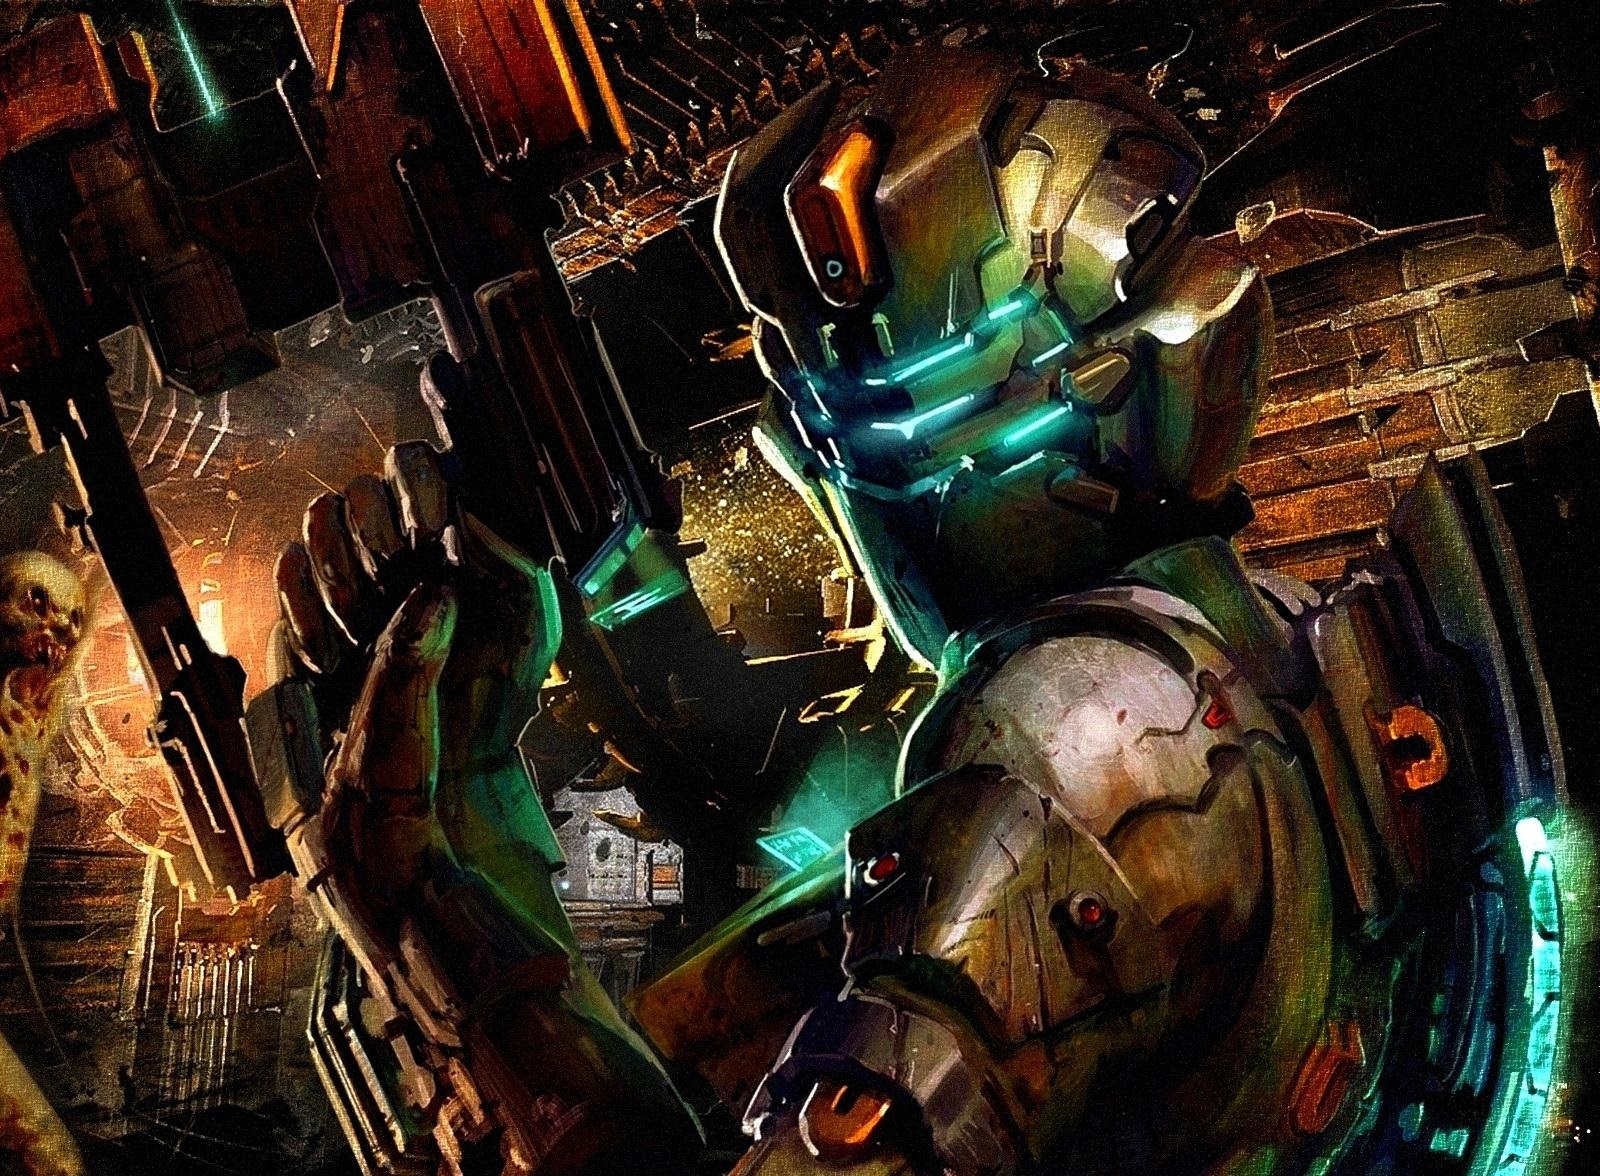 Dead Space 2 Game Art wallpaper 1600x1176 - Fondo hd #2666